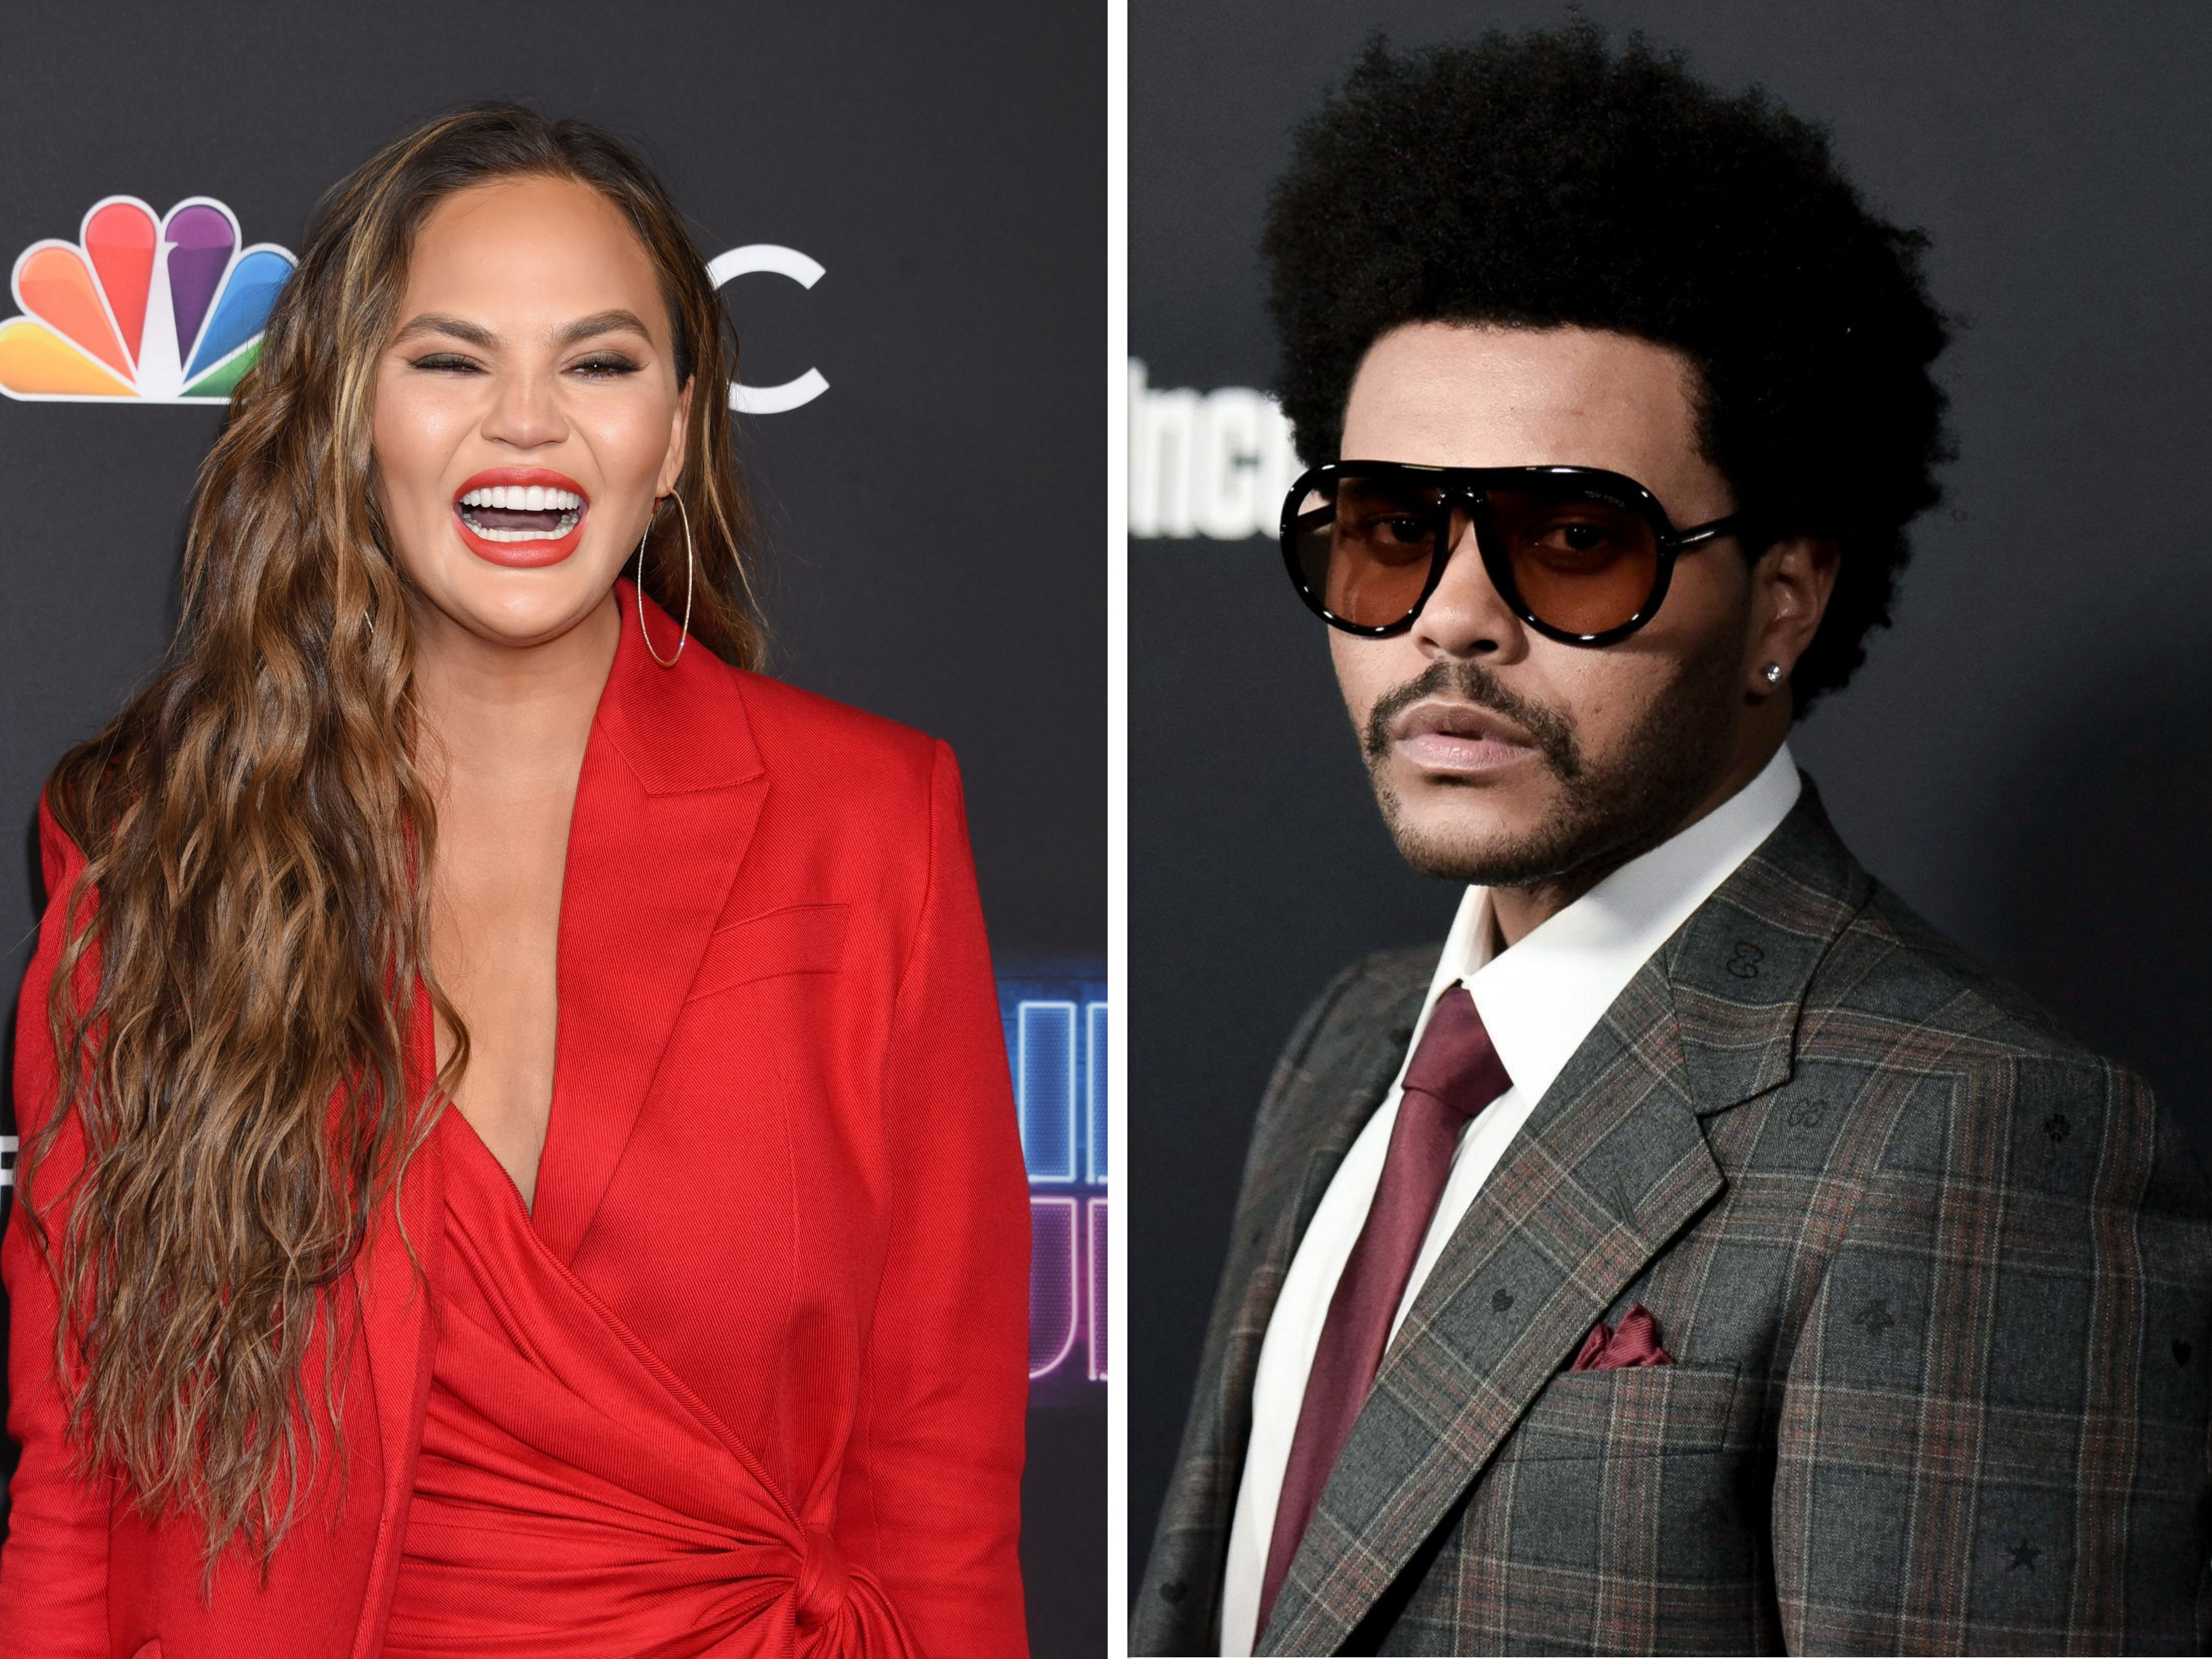 The Weeknd Helps Chrissy Teigen Name His Song After She Goes 'Bonkers'